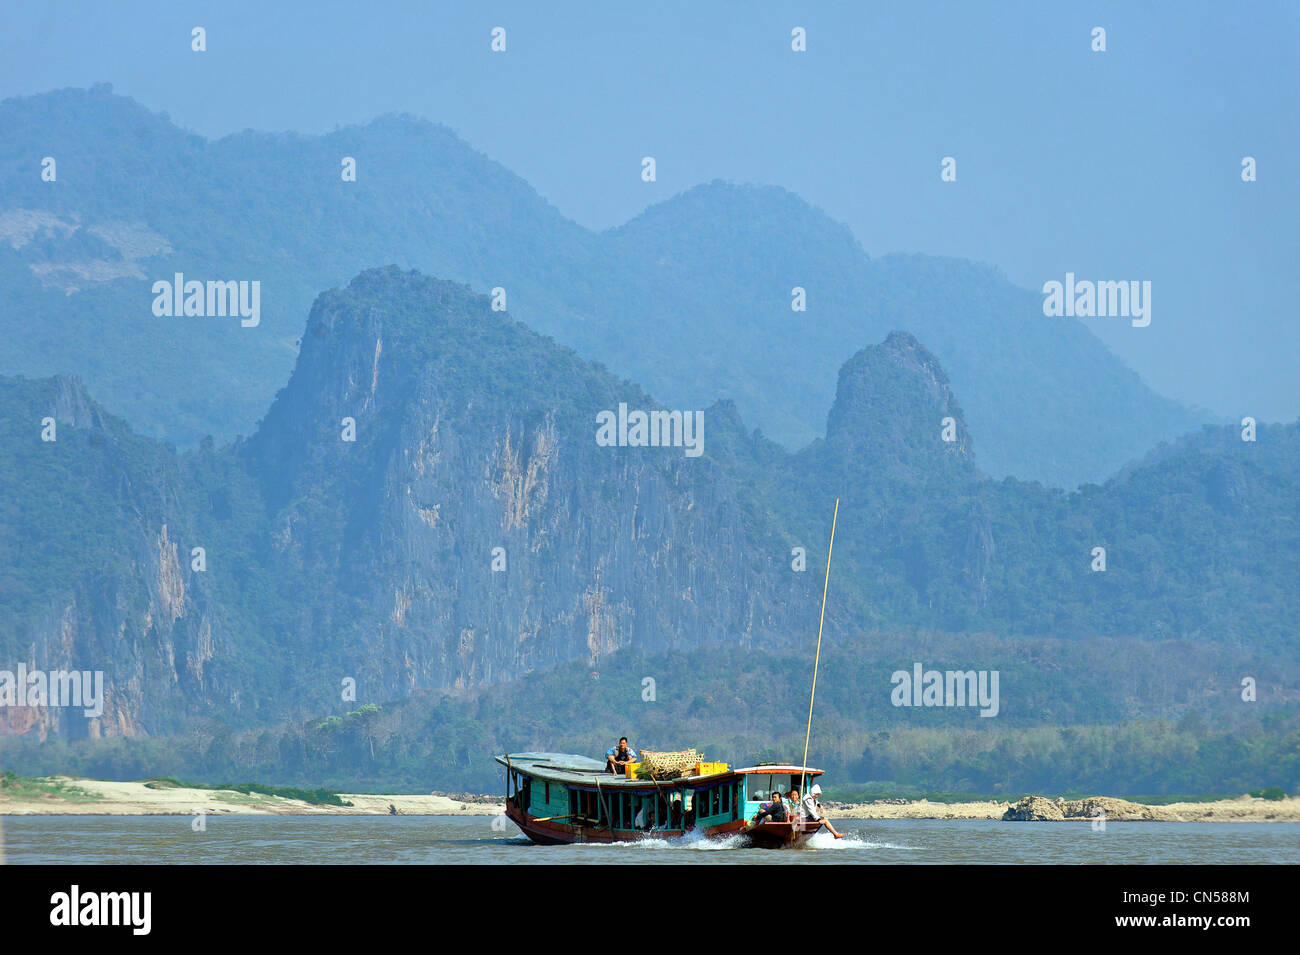 Laos, Luang Prabang Province, Pak Ou, Mekong River, traditional flat-bottomed boat connecting with neighboring Thailand - Stock Image